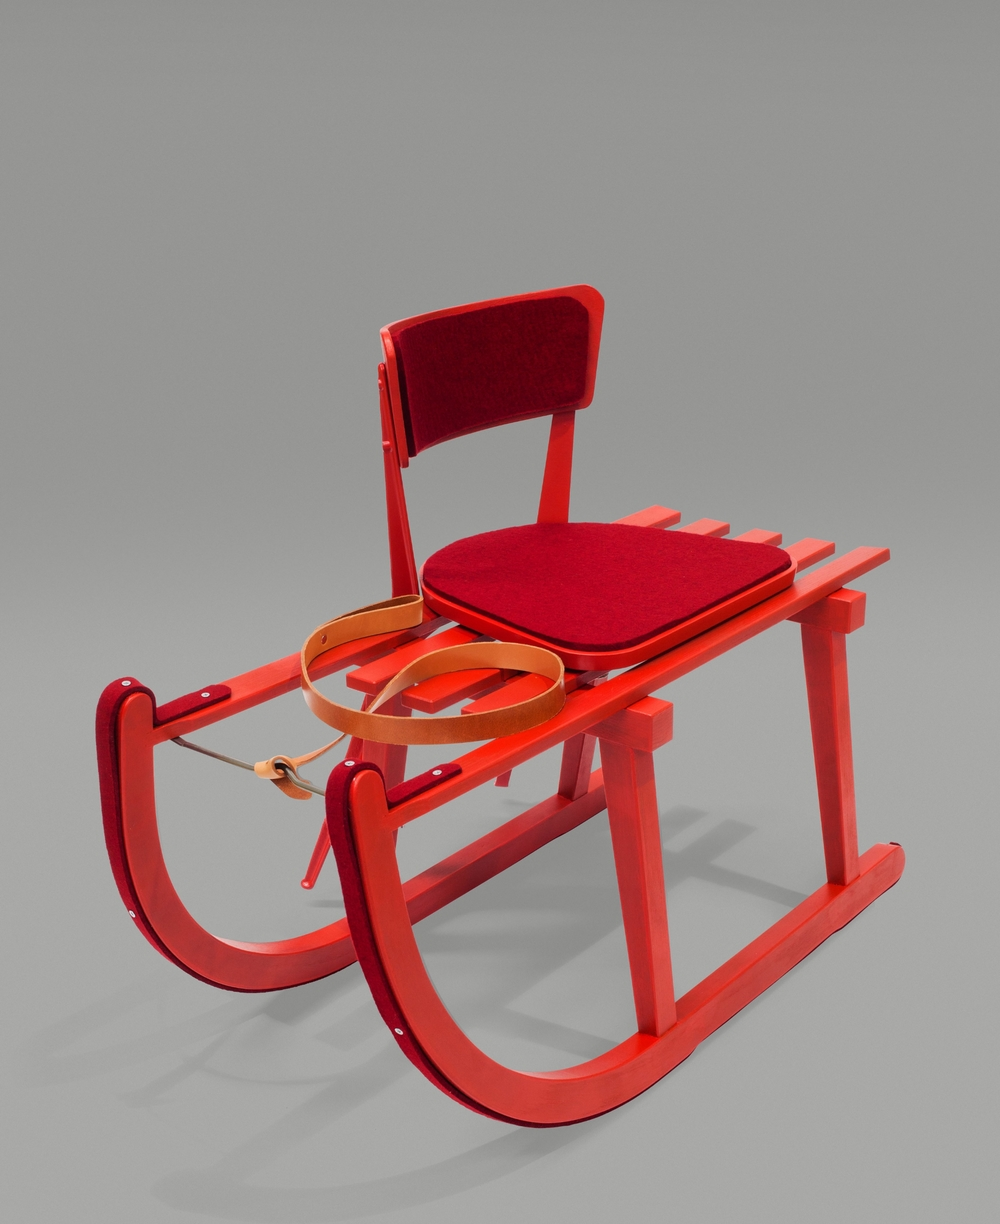 71_Rolf_Sachs_Chair_Carl_Glover.jpg